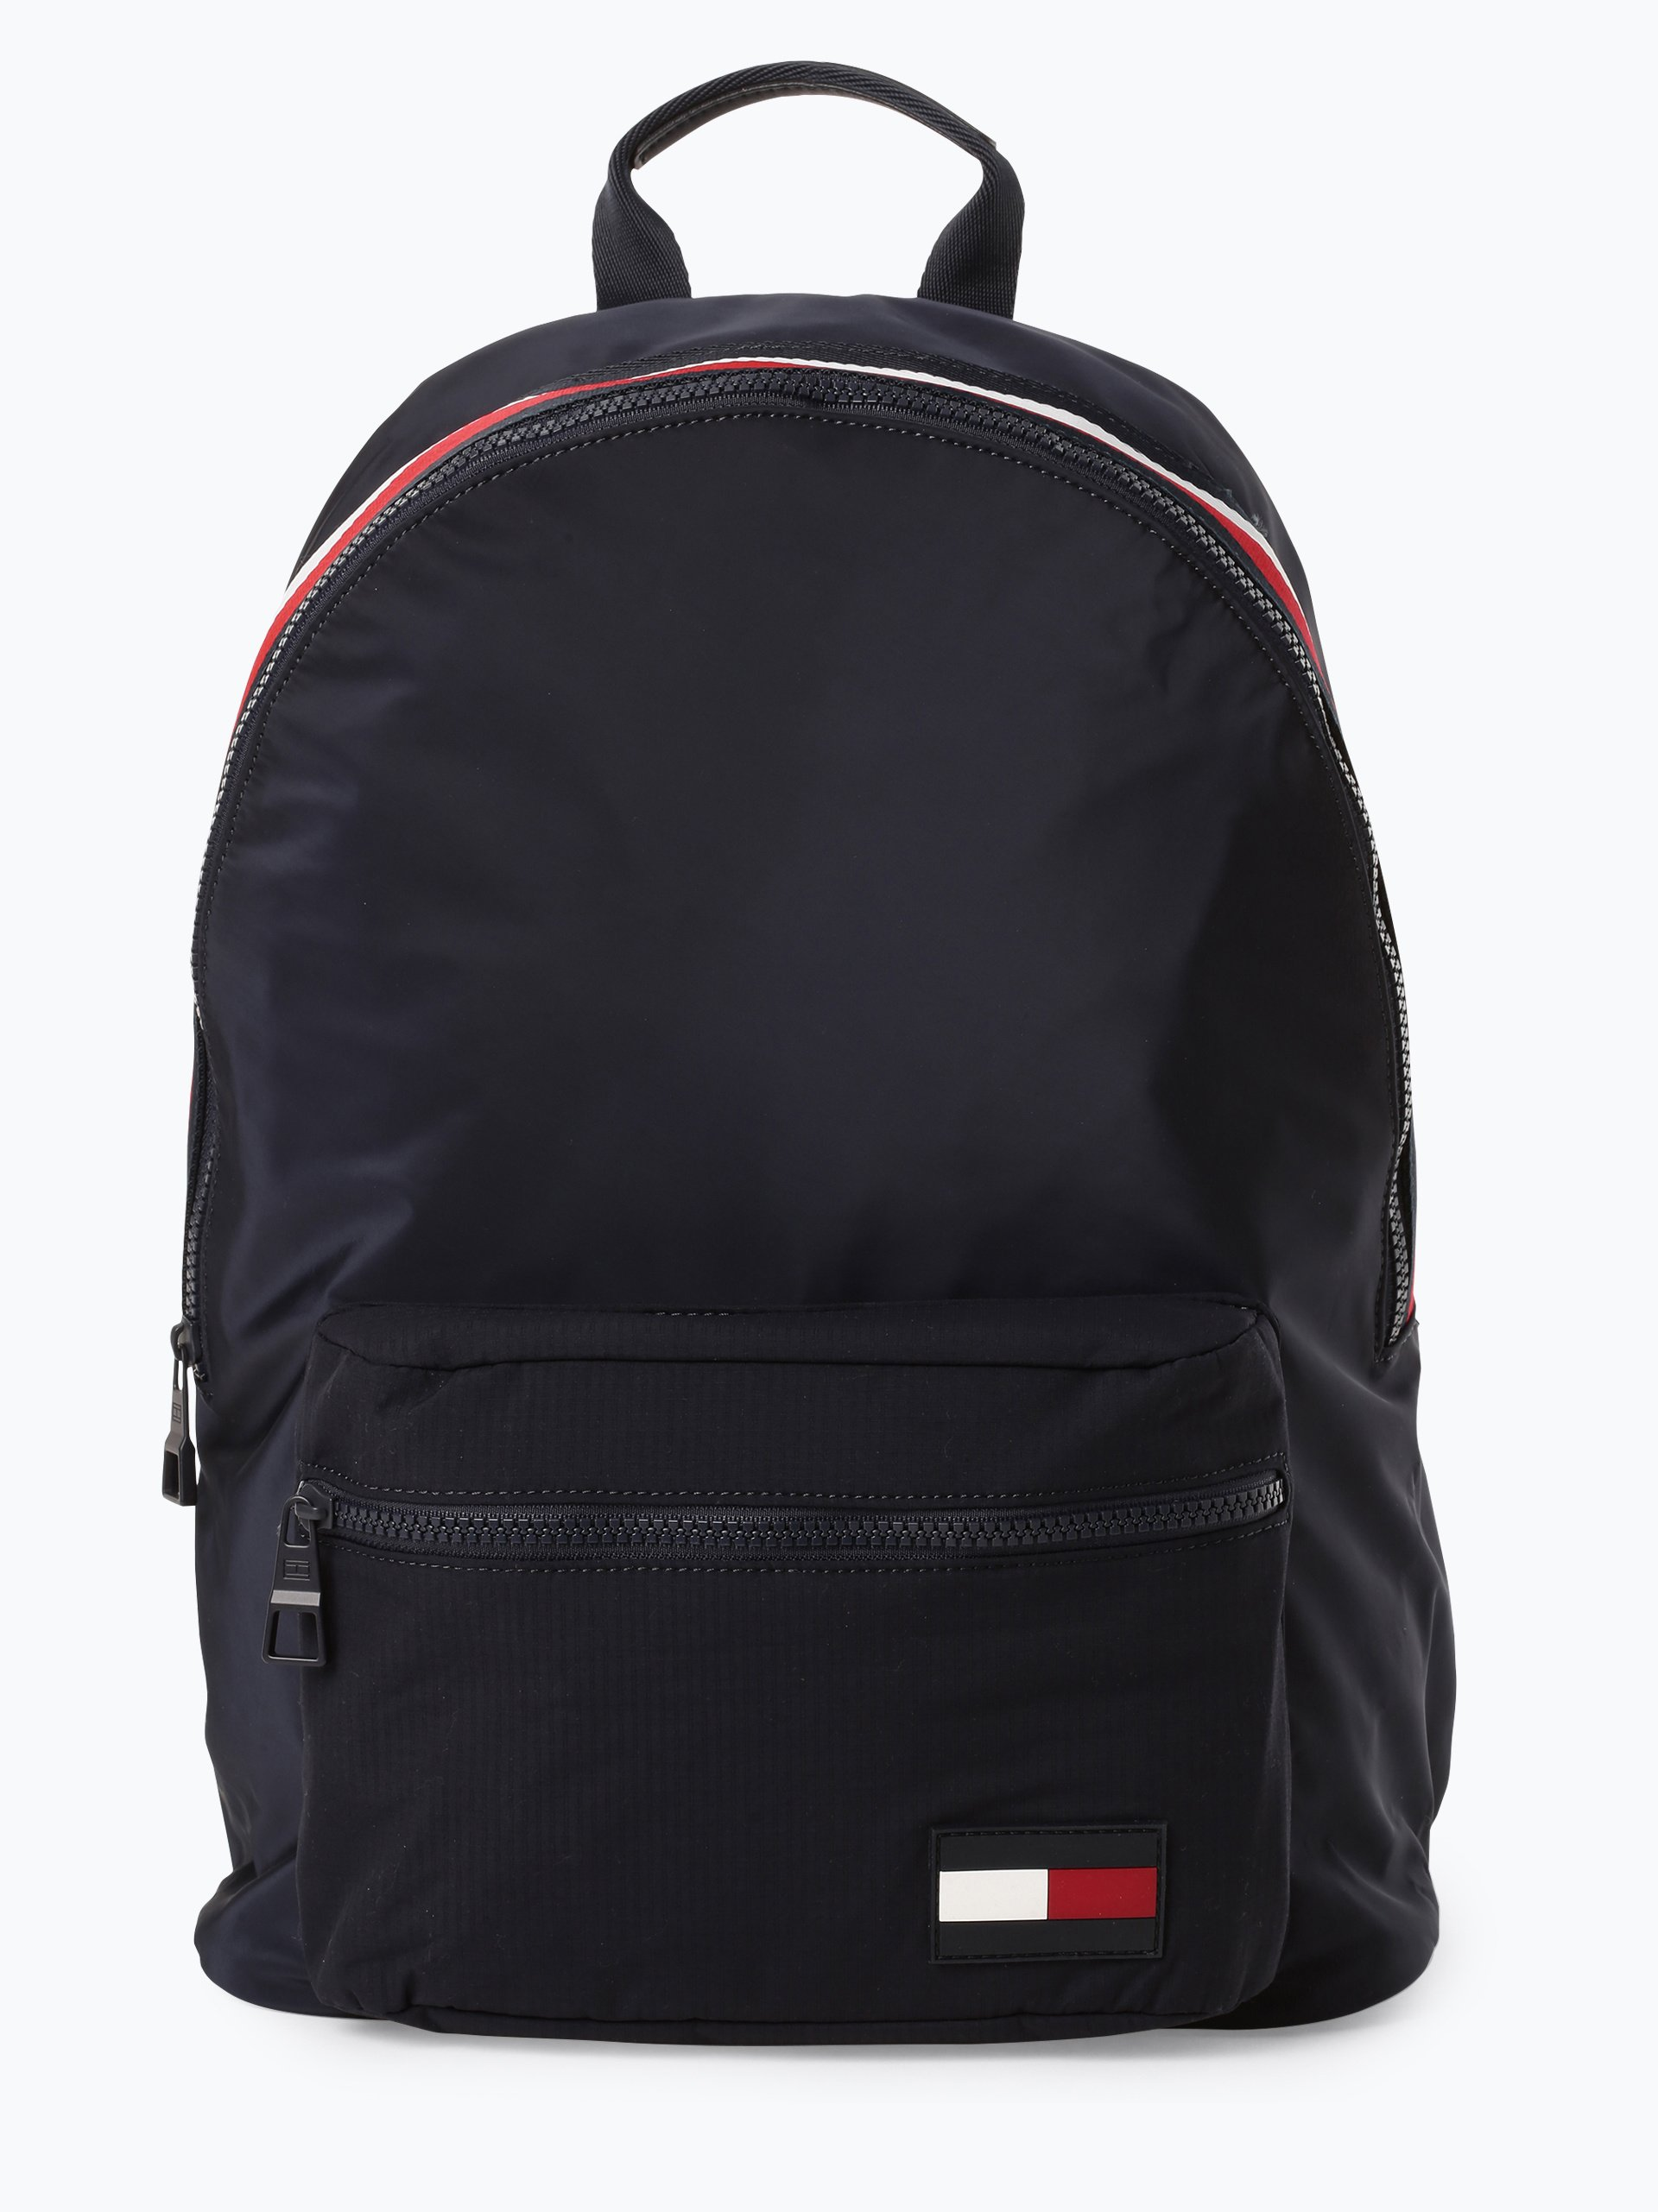 tommy hilfiger herren rucksack online kaufen vangraaf com. Black Bedroom Furniture Sets. Home Design Ideas